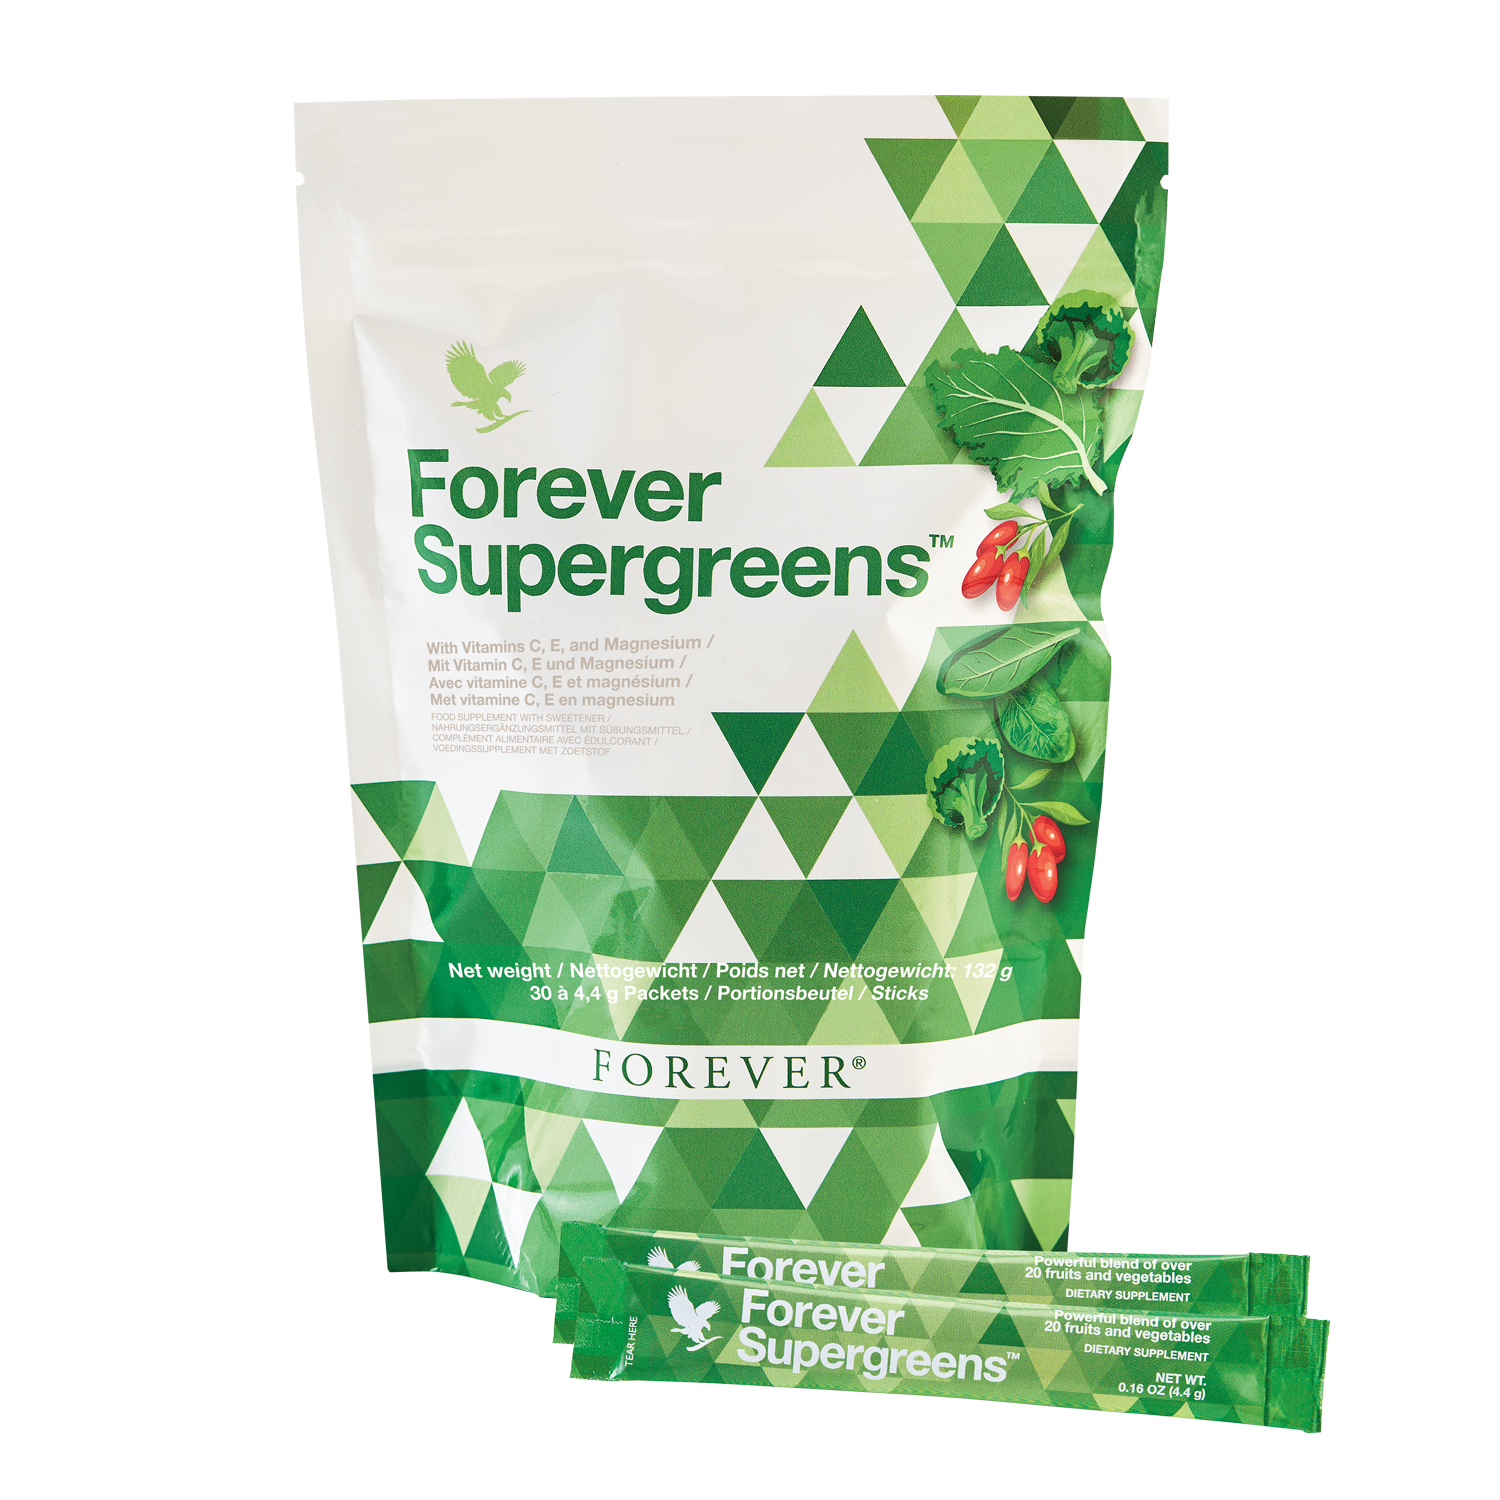 Forever Supergreens gives you more than 20 fruits and vegetables in a handy portion pack.